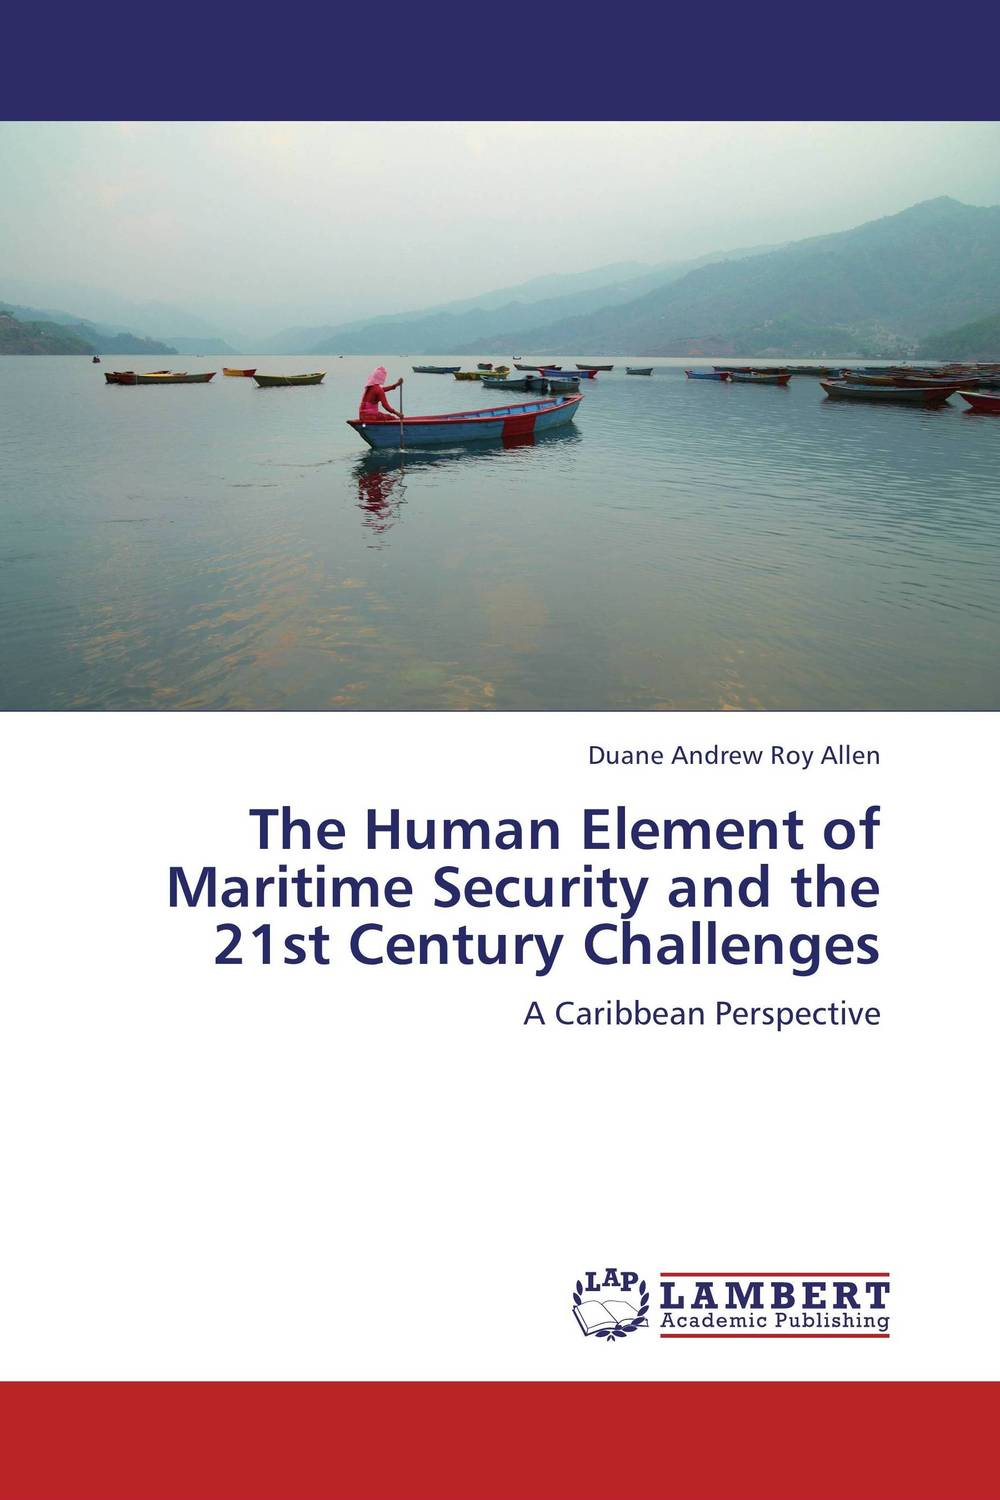 The Human Element of Maritime Security and the 21st Century Challenges maritime safety